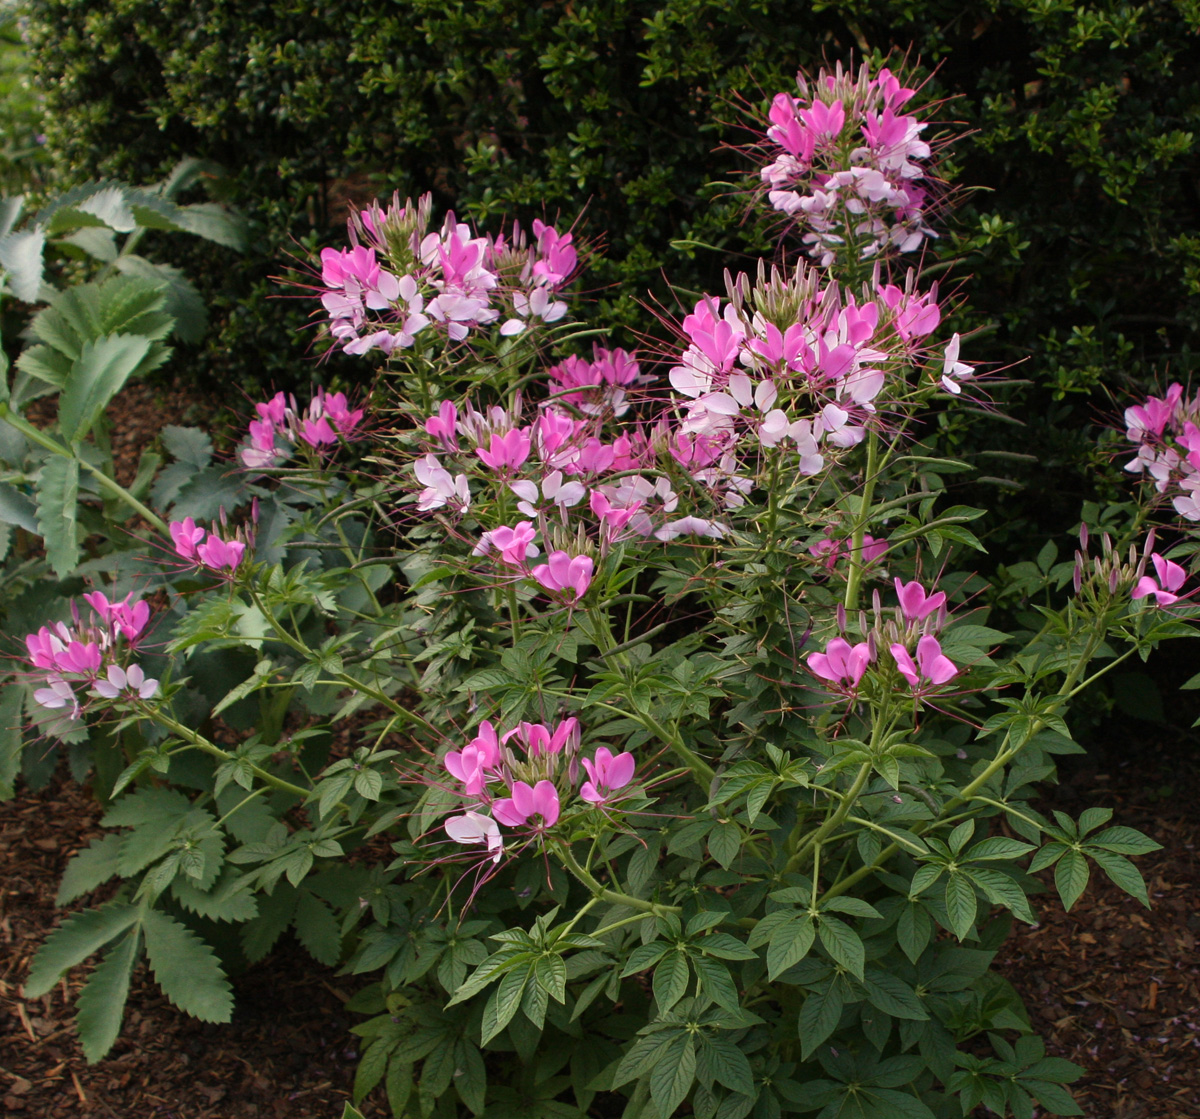 'Fountain Blend' cleome